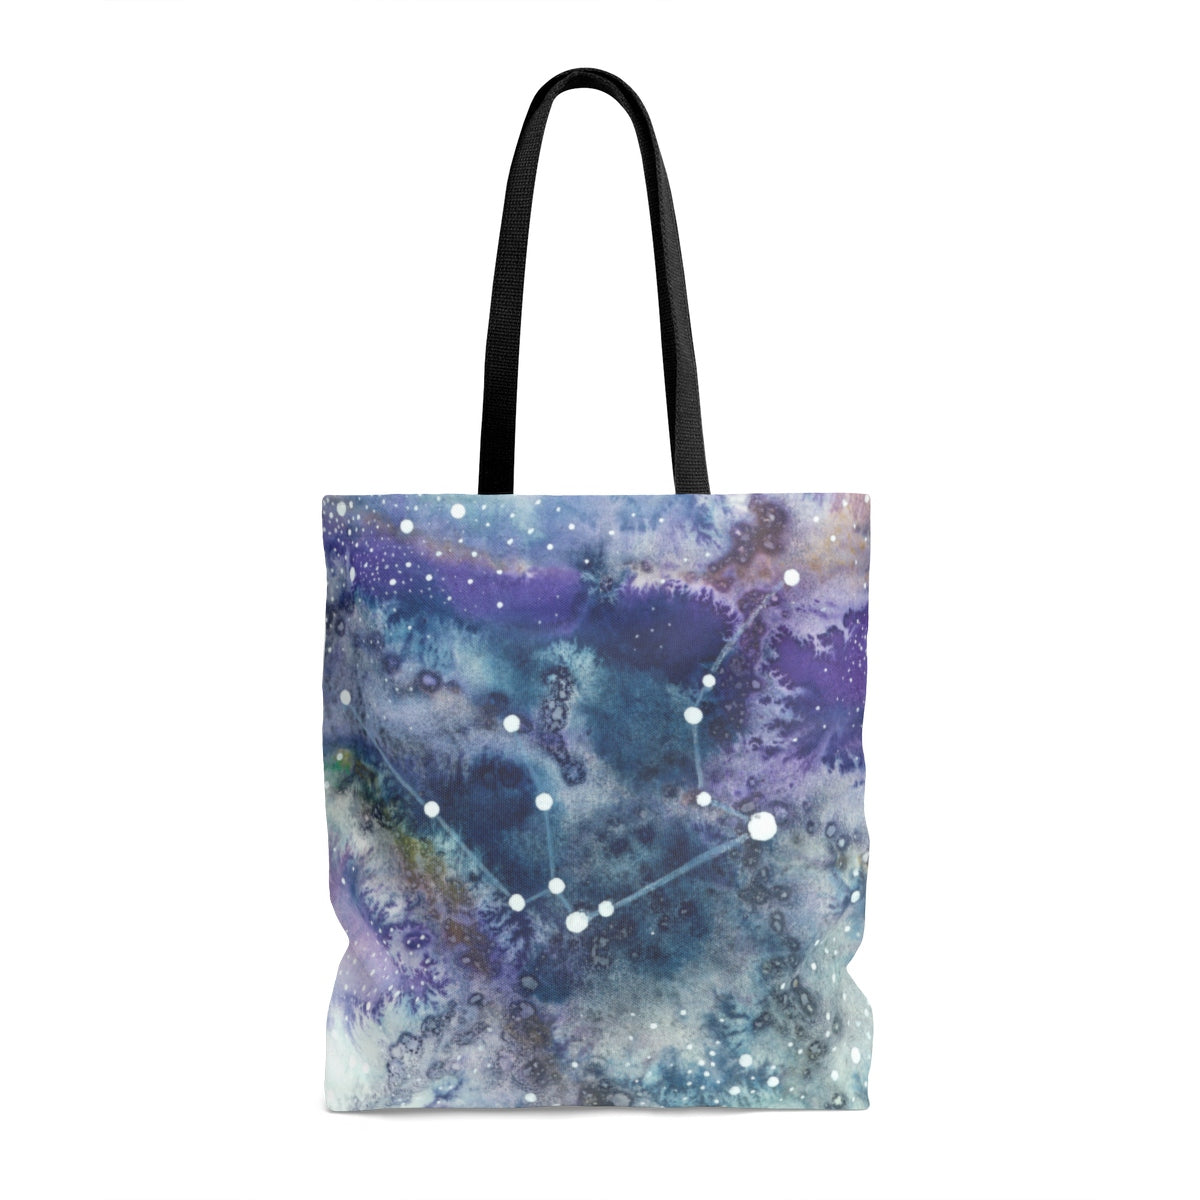 AQUARIUS Tote Bag, Bags - Gravitational Pull Art